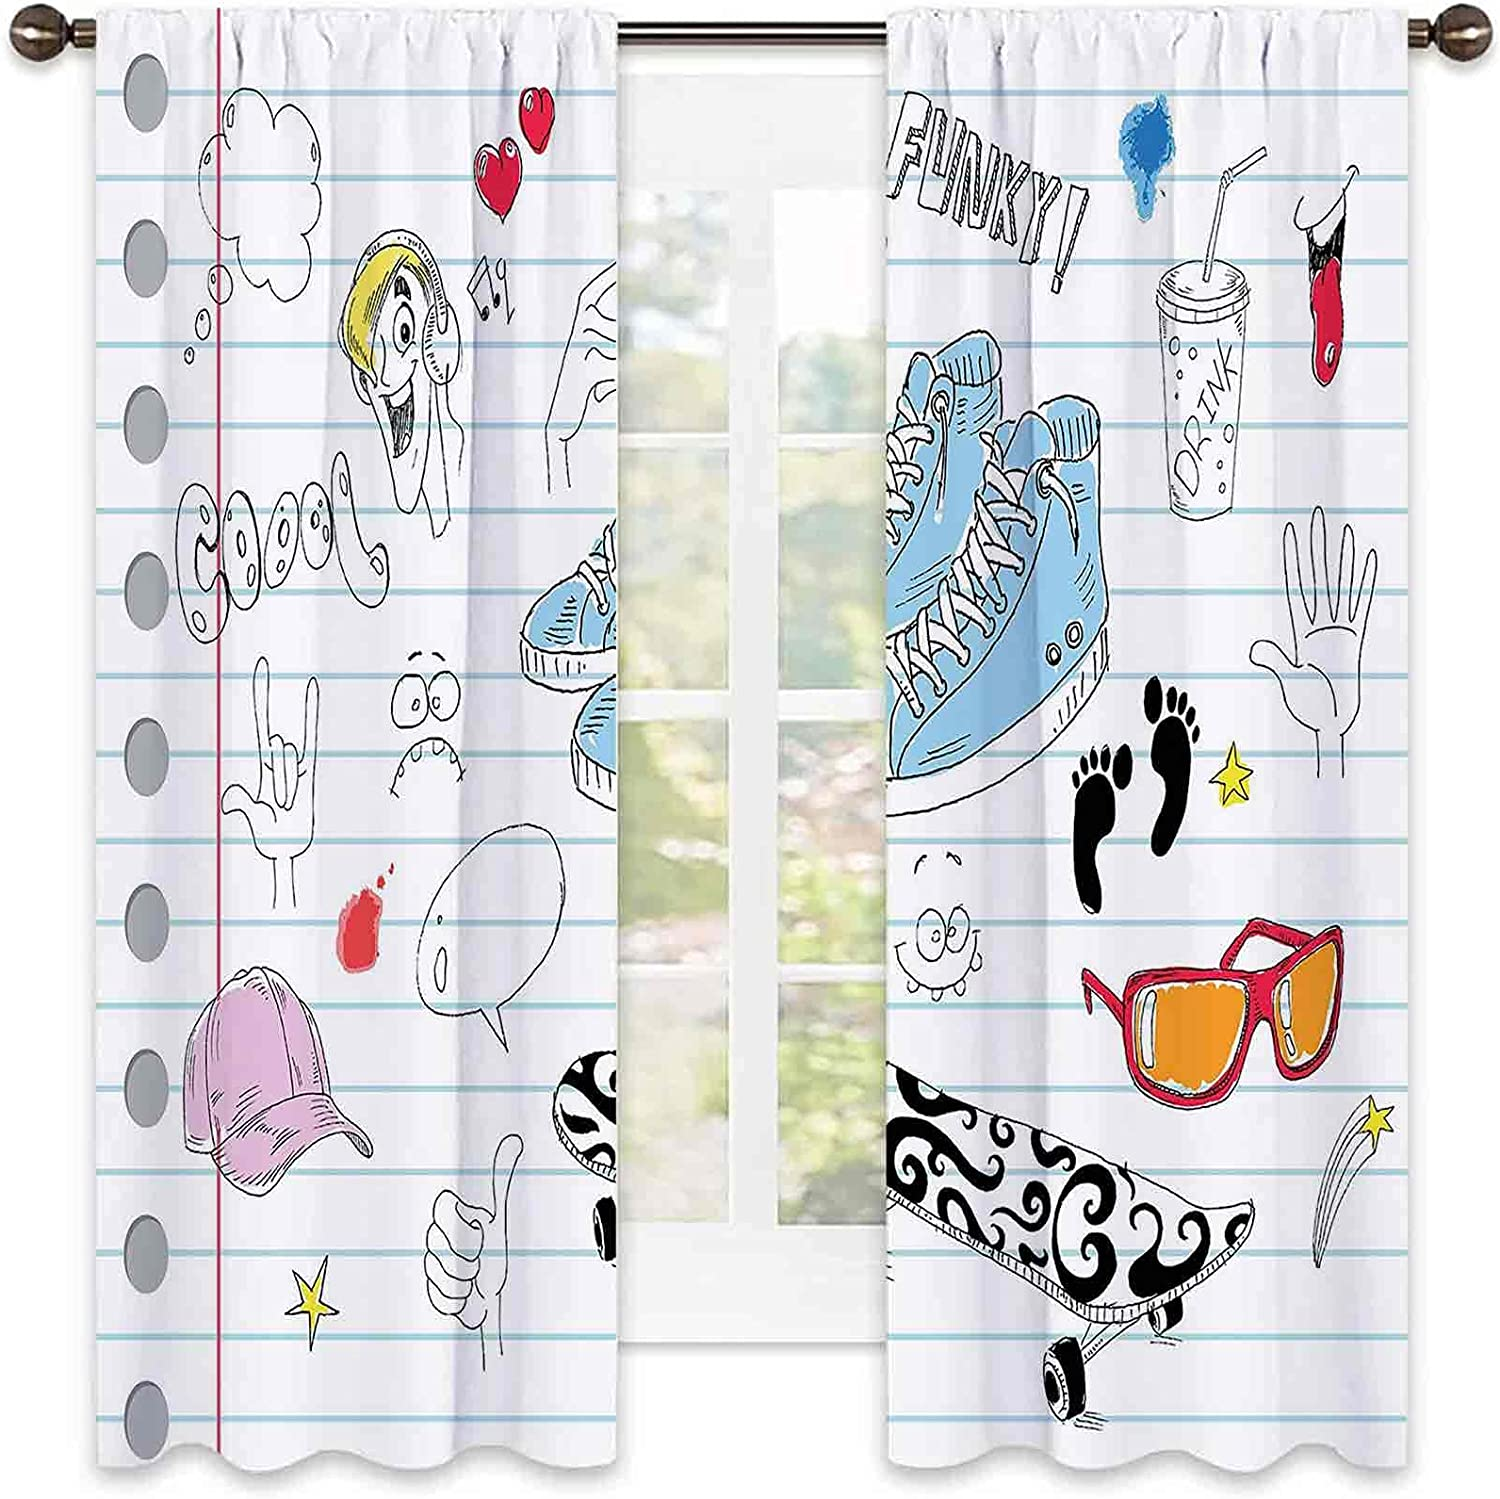 Doodle Wear Resistant Max 58% OFF Fresno Mall Color Curtain Vari with Design Notebook a